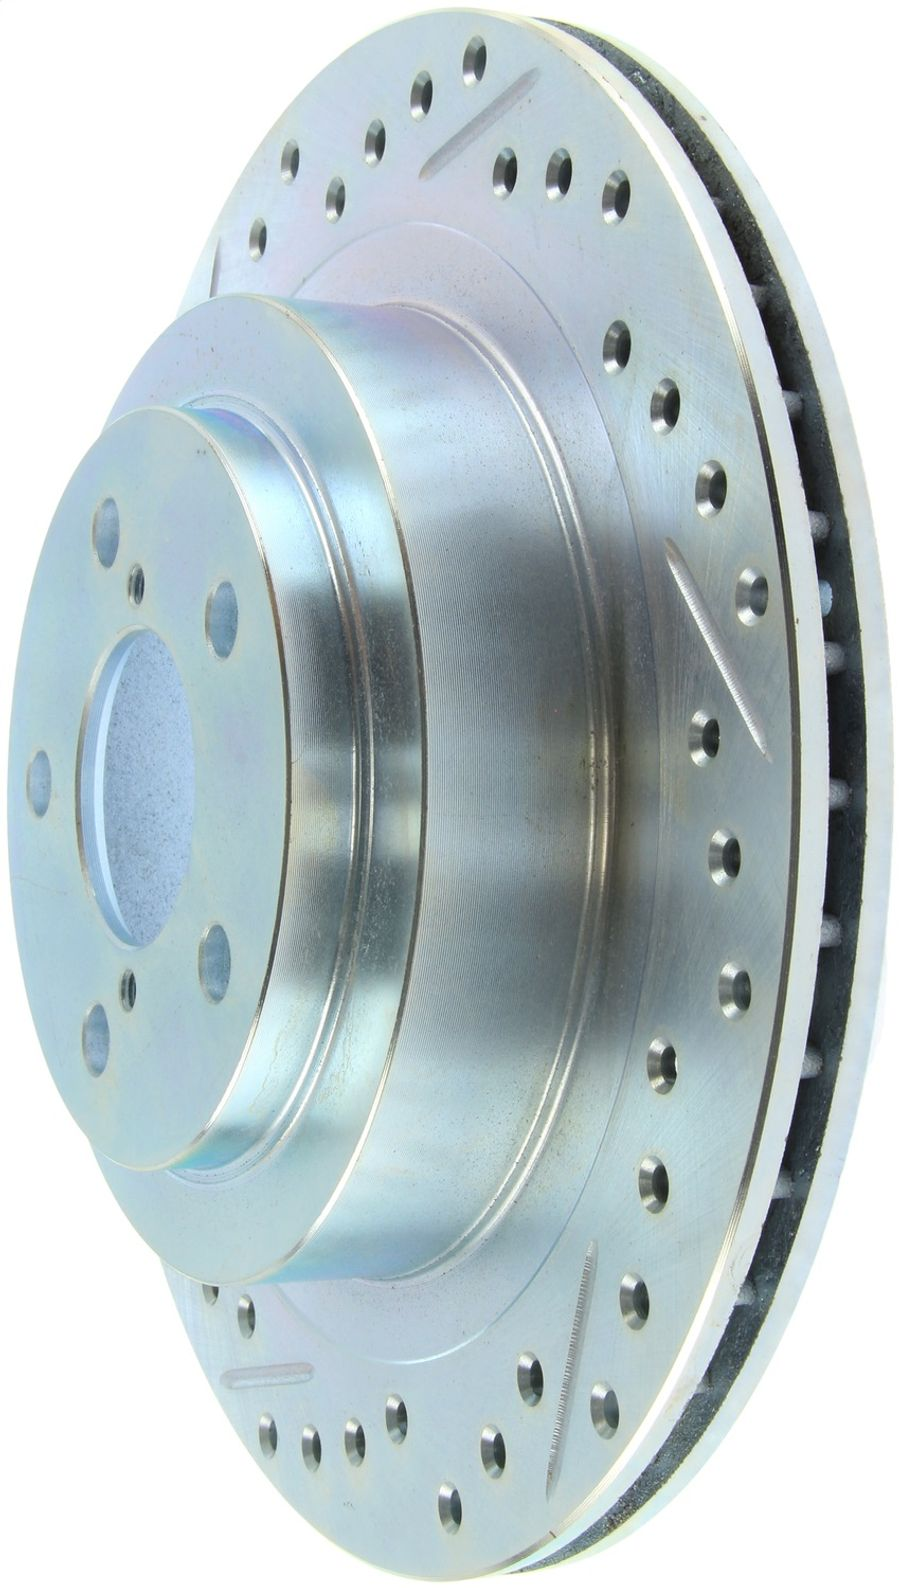 StopTech Disc Brake Rotors Brakes Select Sport Drilled/Slotted Rotor 227.47025R